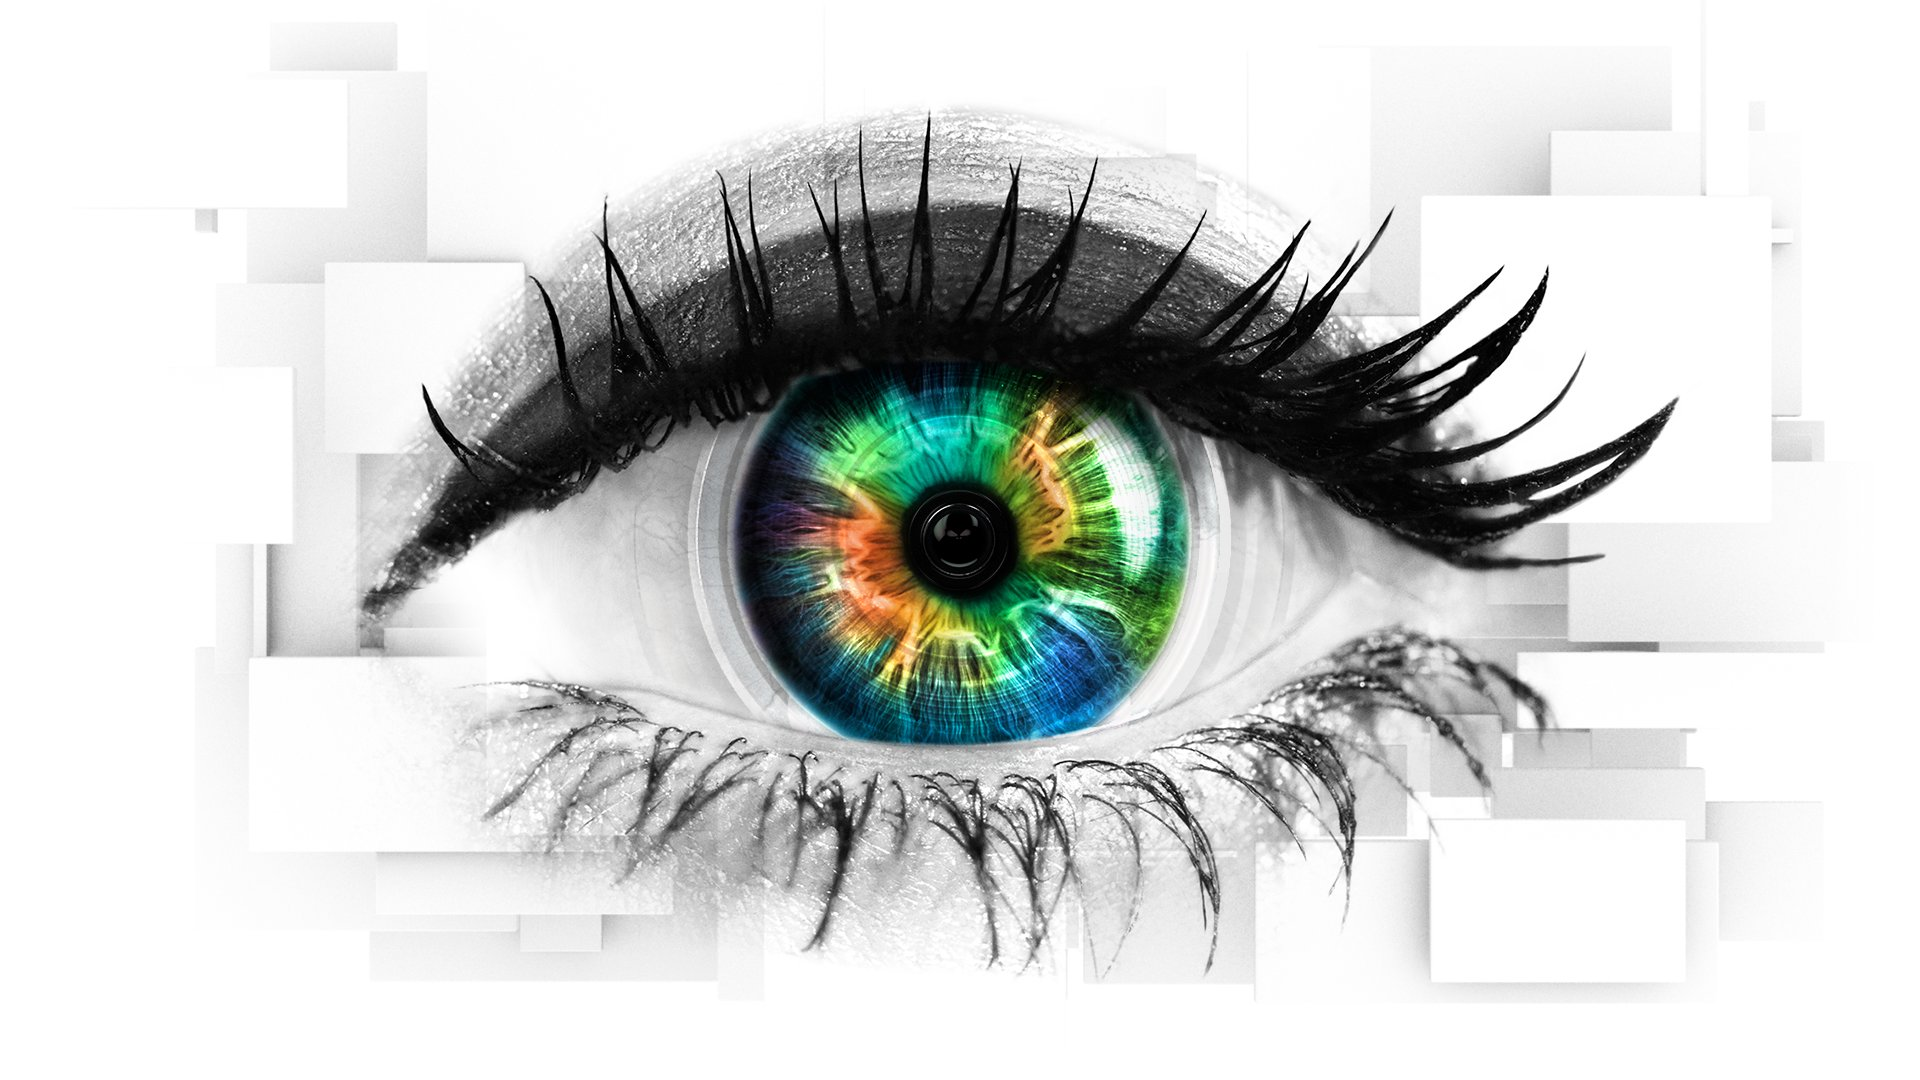 Eye eye! #CBB is coming! It all kicks off on Tuesday 2nd January at 9pm! 👍👍👍 https://t.co/TOHTORYsng